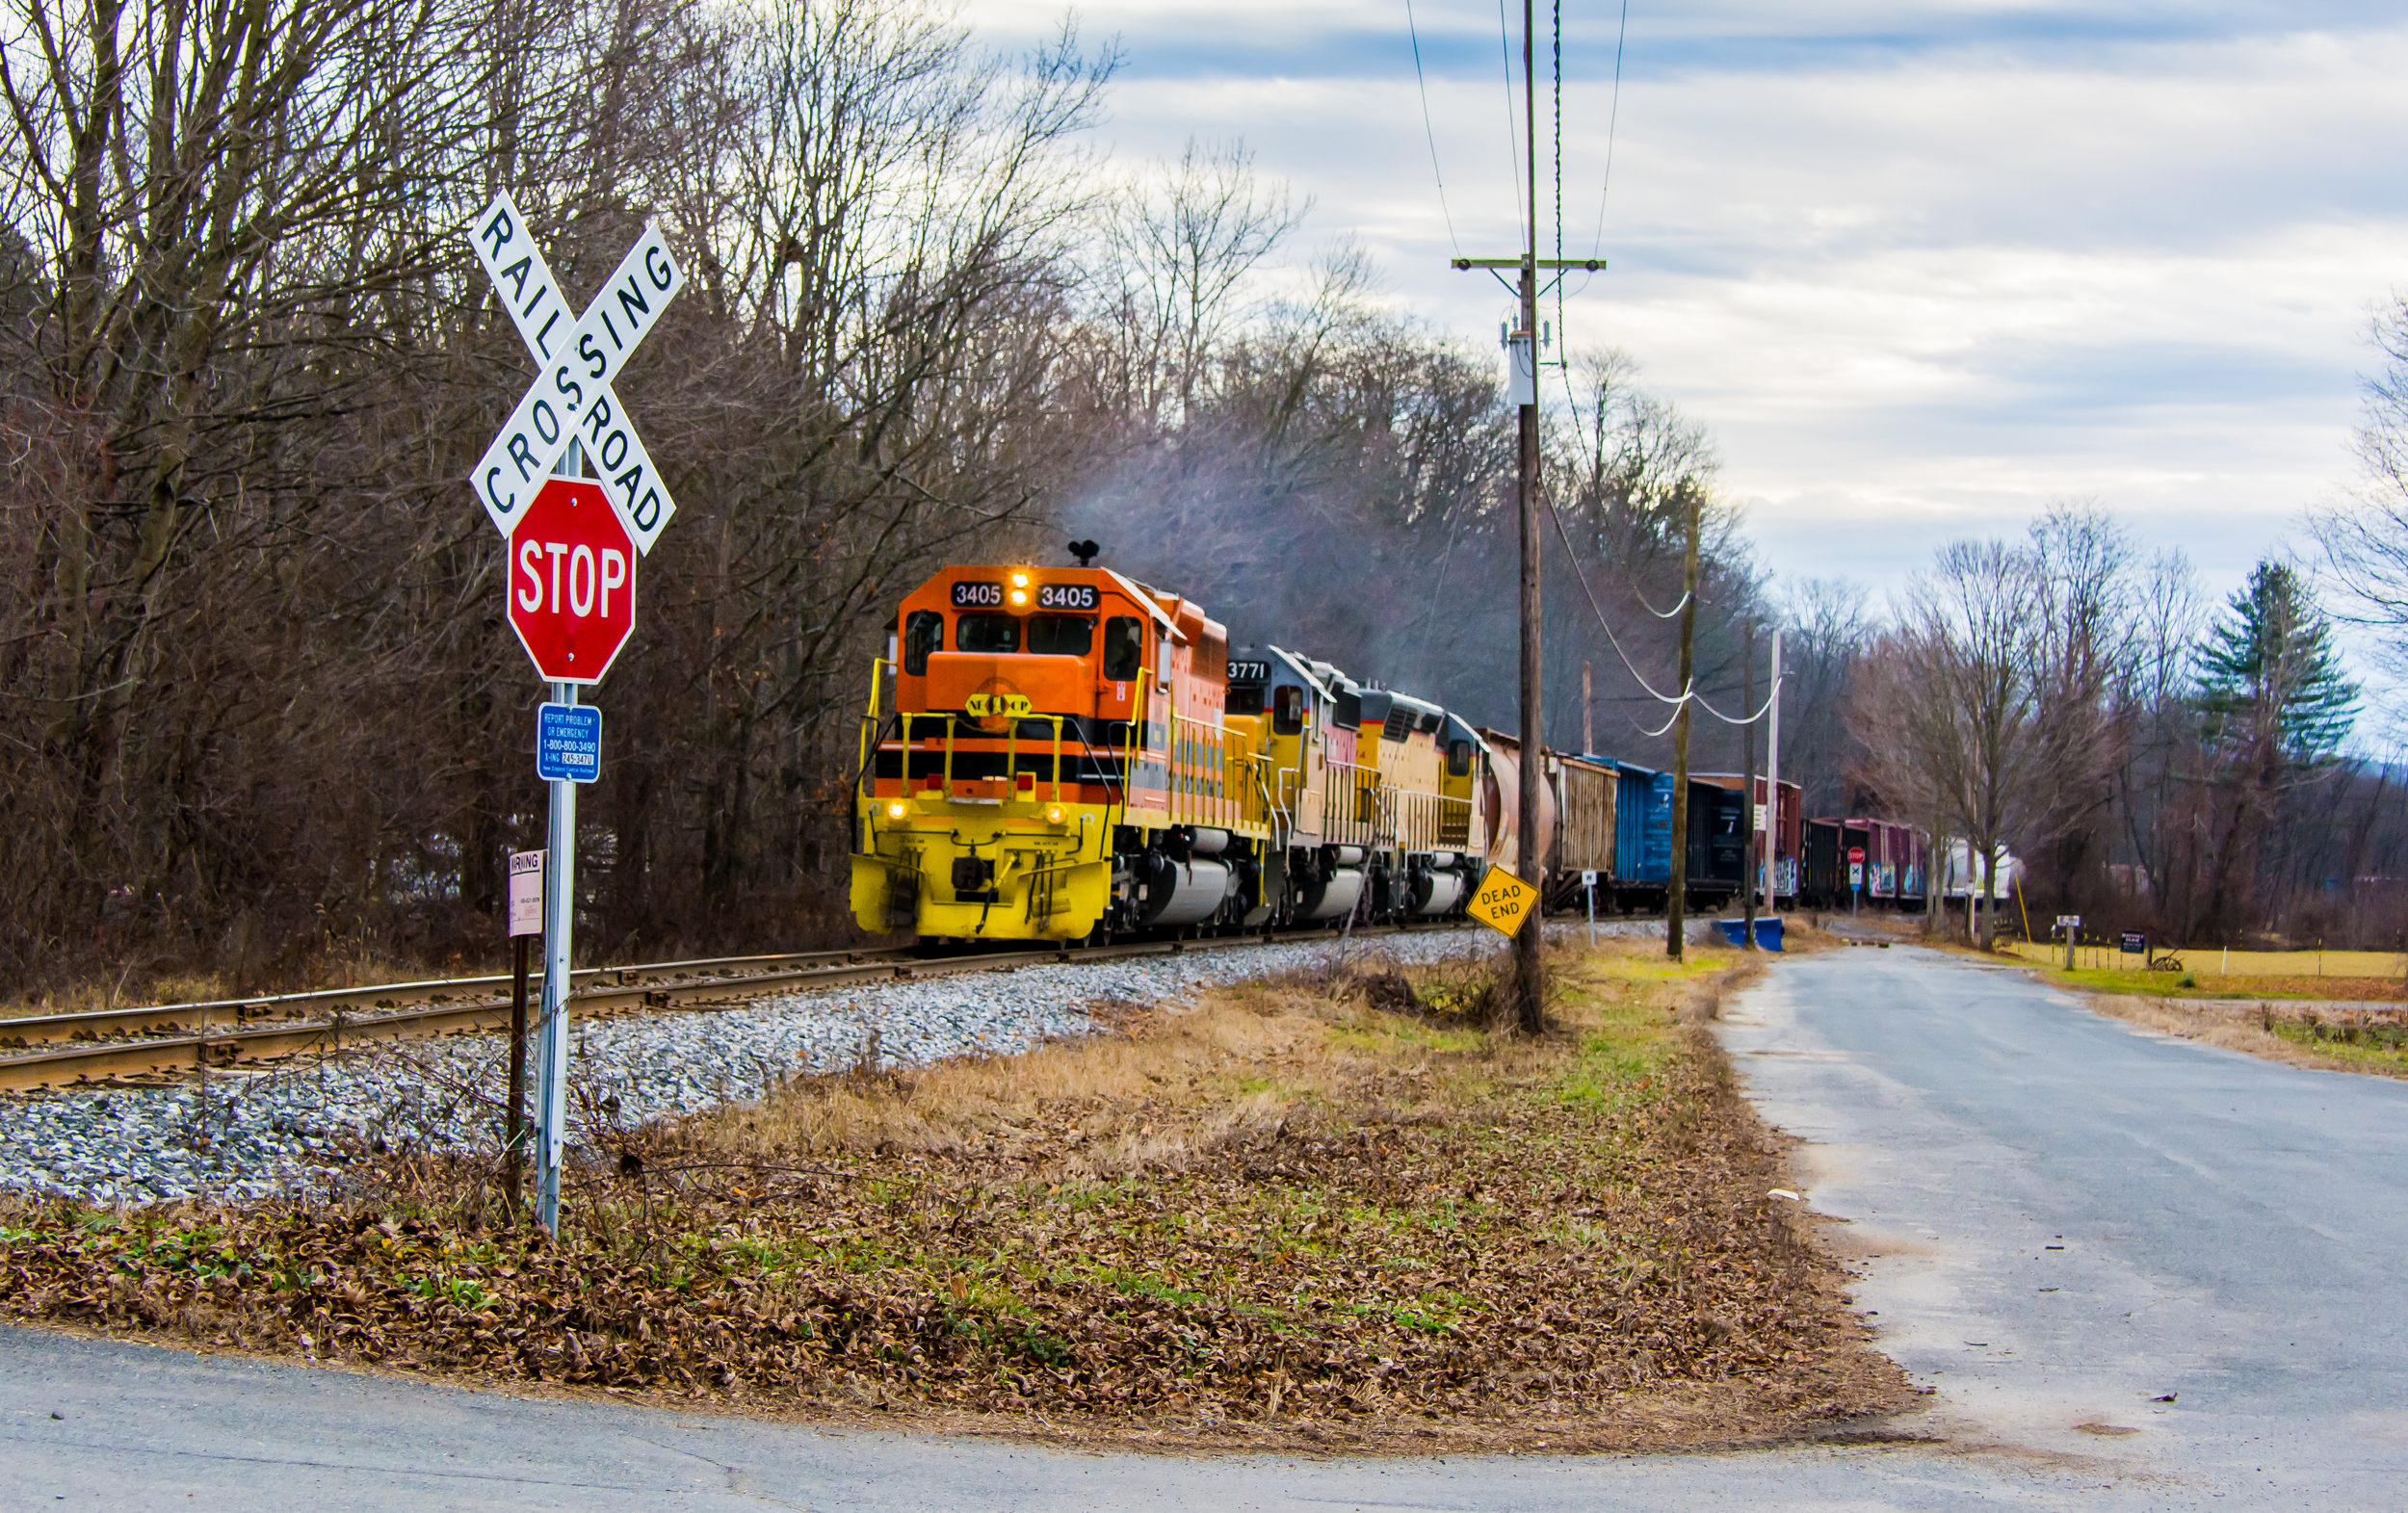 New England Central Railroad at Northfield MA